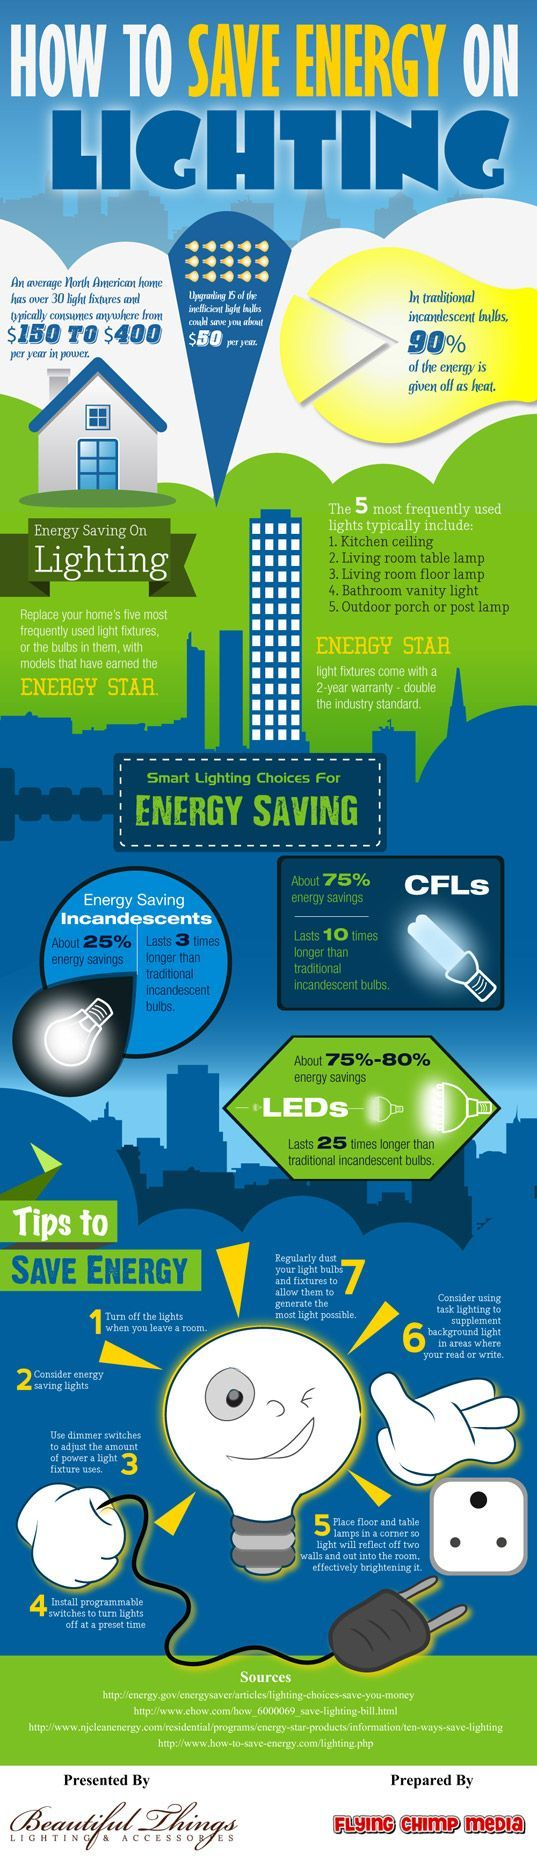 Nice How to save energy on lightning LEDs last times longer than traditional incandescent bulbs